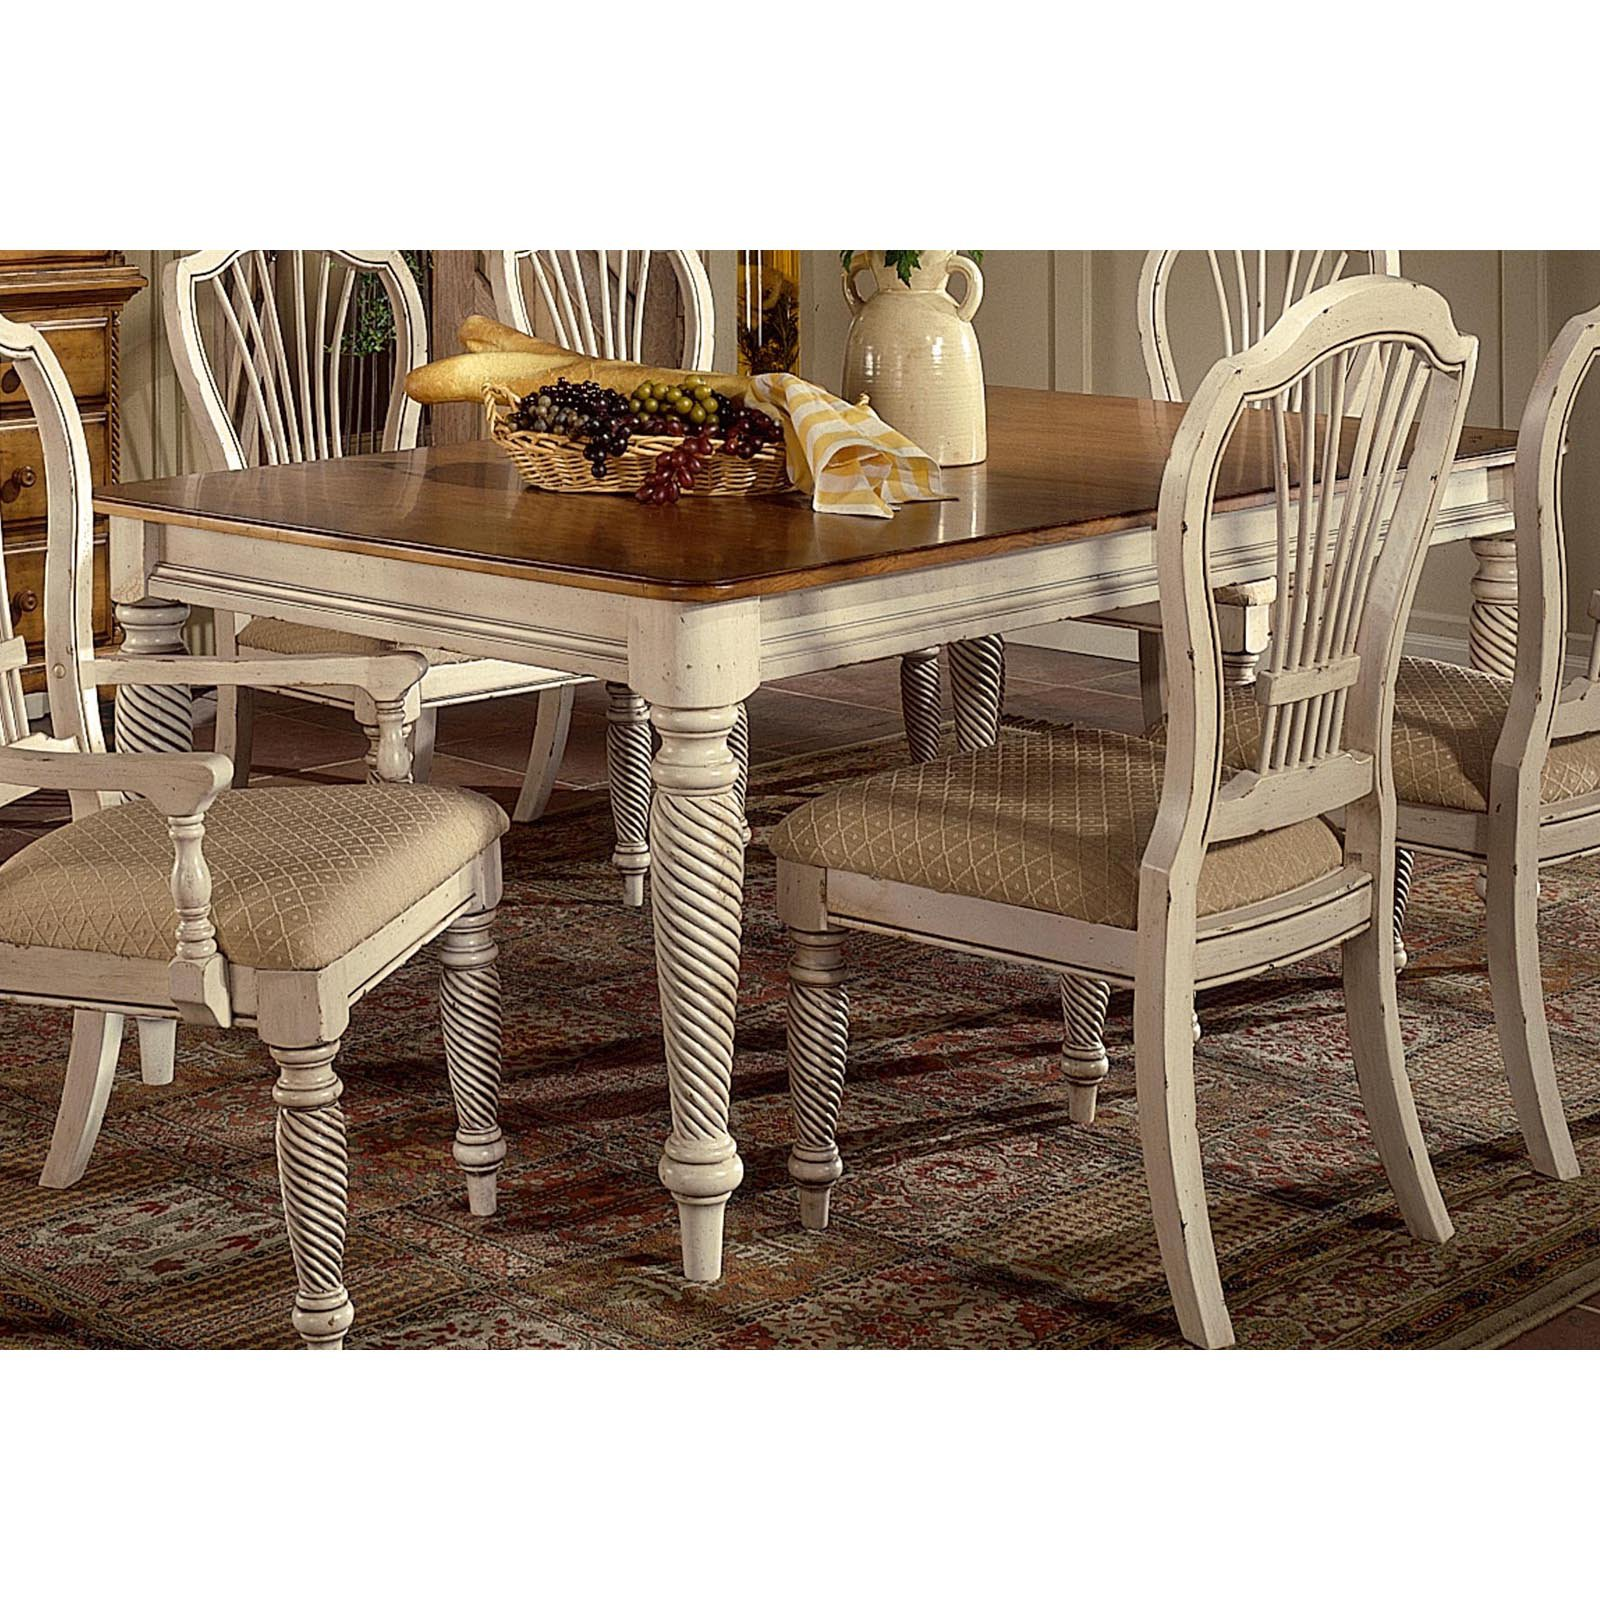 Hilale Furniture Wilshire Rectangle Dining Table With Two 18 Leaves